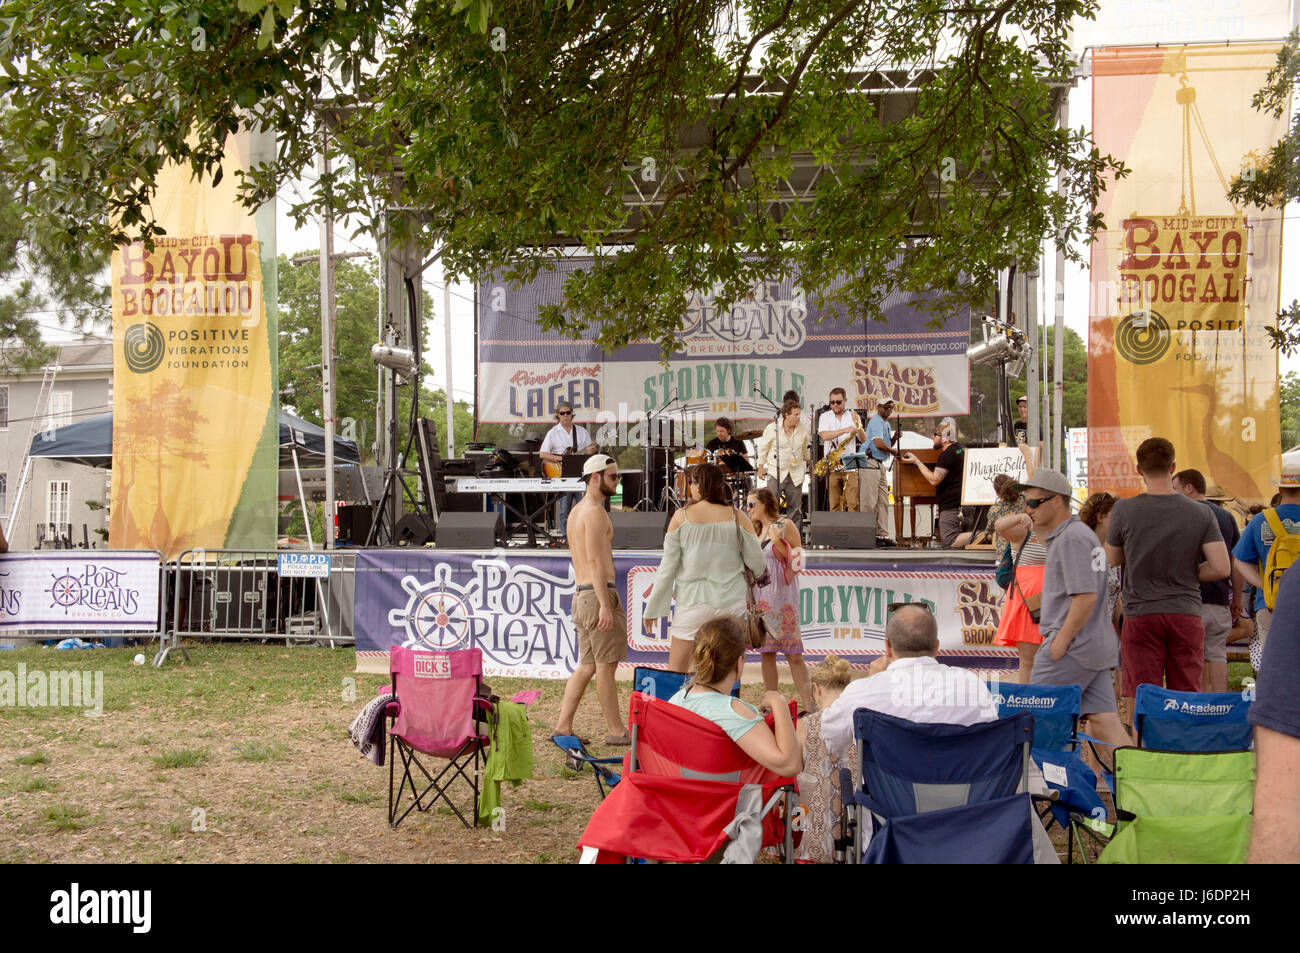 Spectators enjoying music at the annual Bayou Boogaloo festival.  New Orleans, LA. - Stock Image